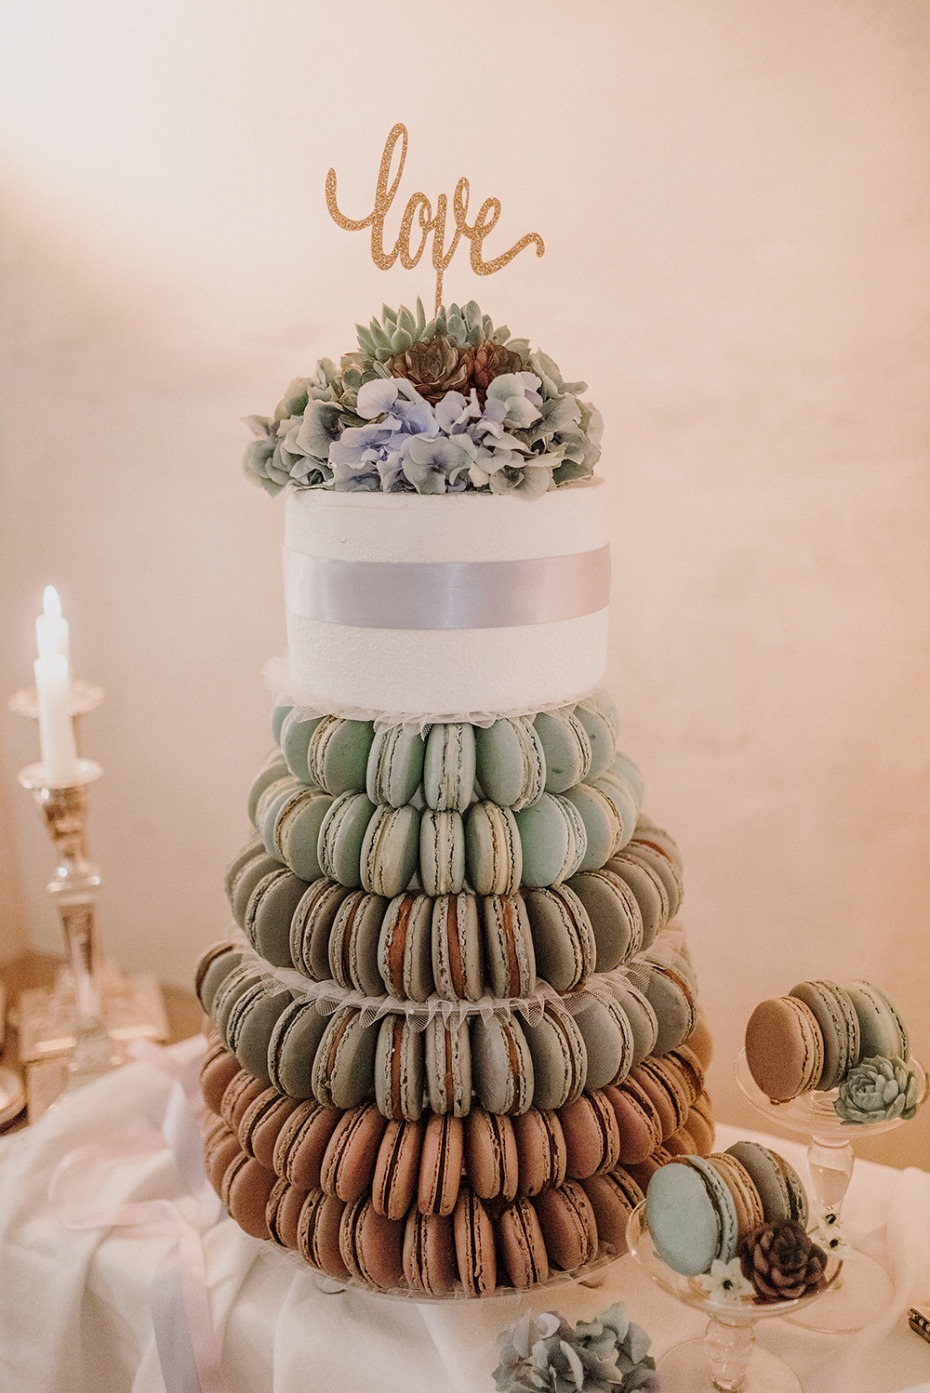 macaron tower and wedding cake